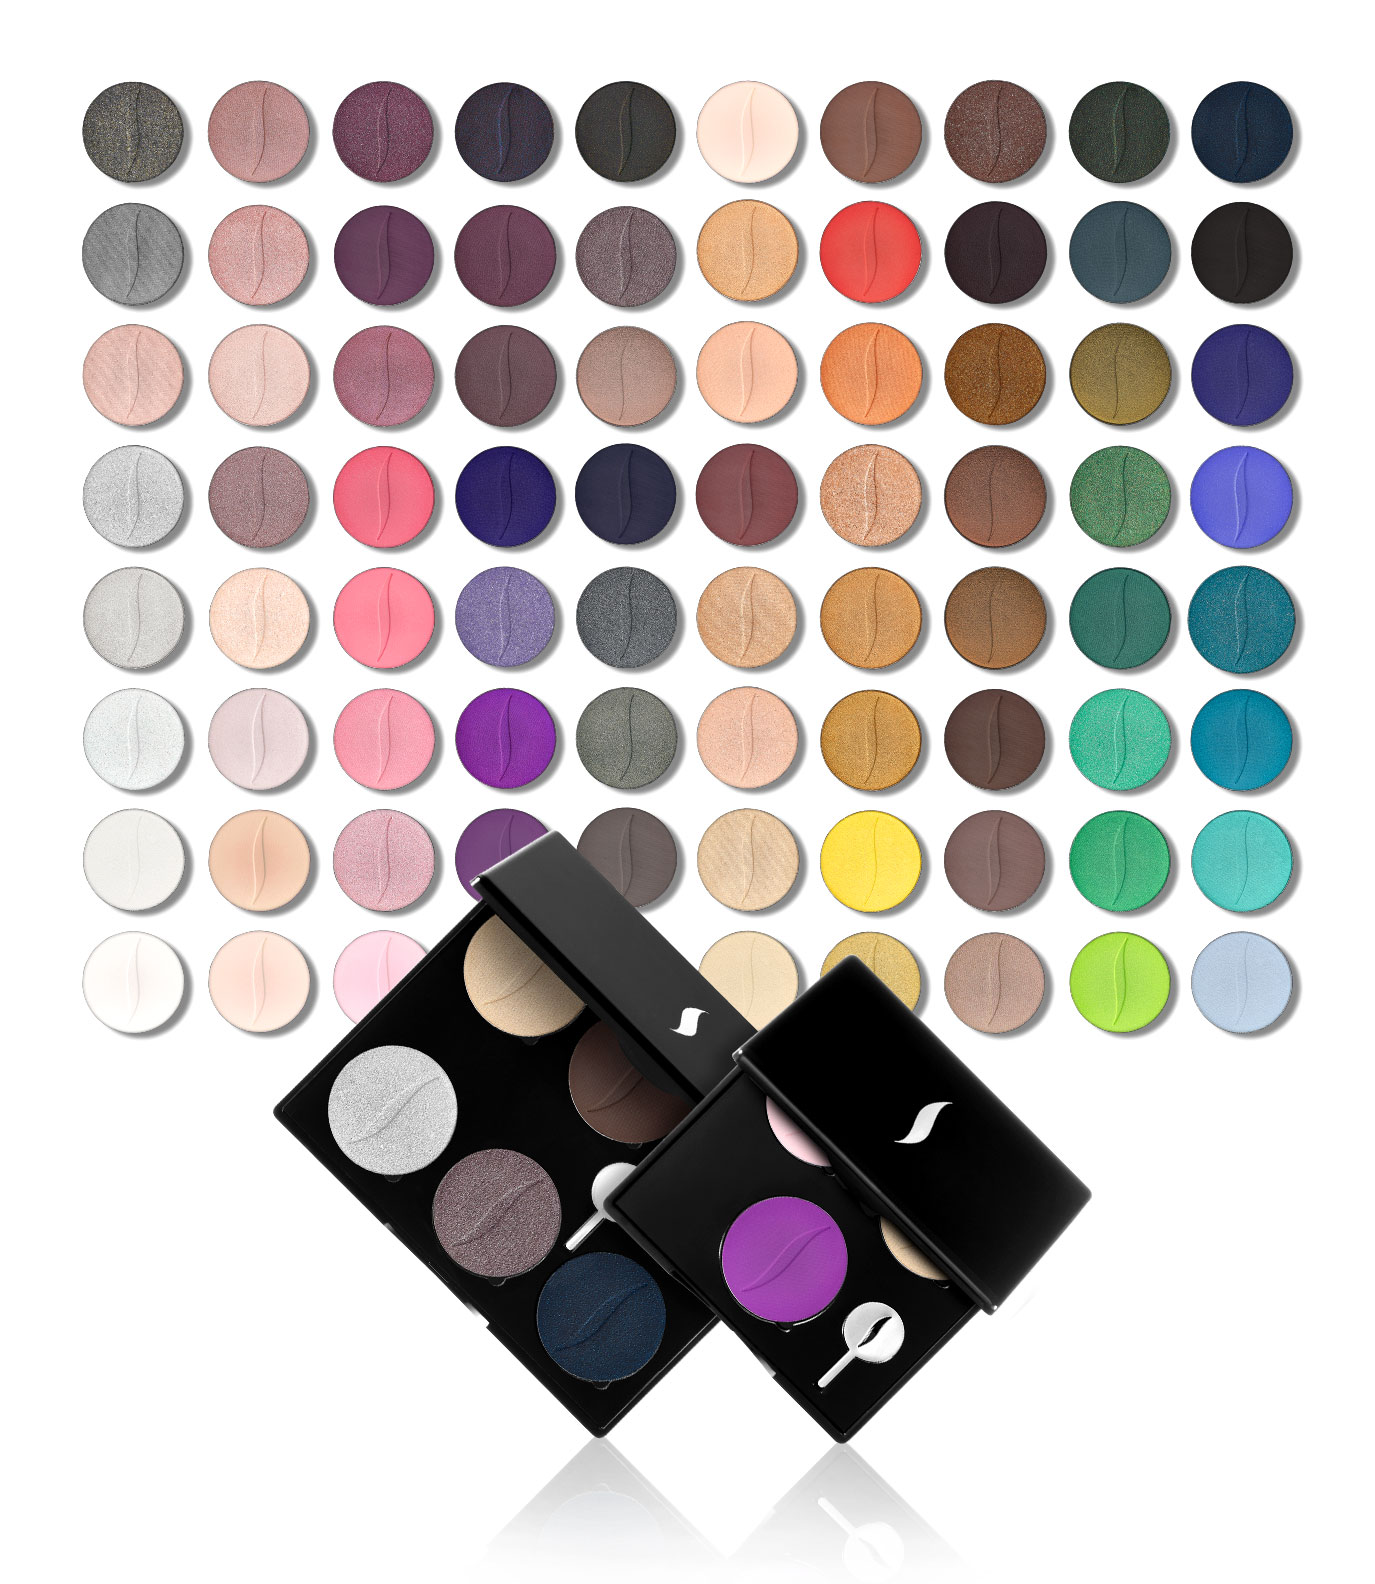 colorful_pallette.jpg